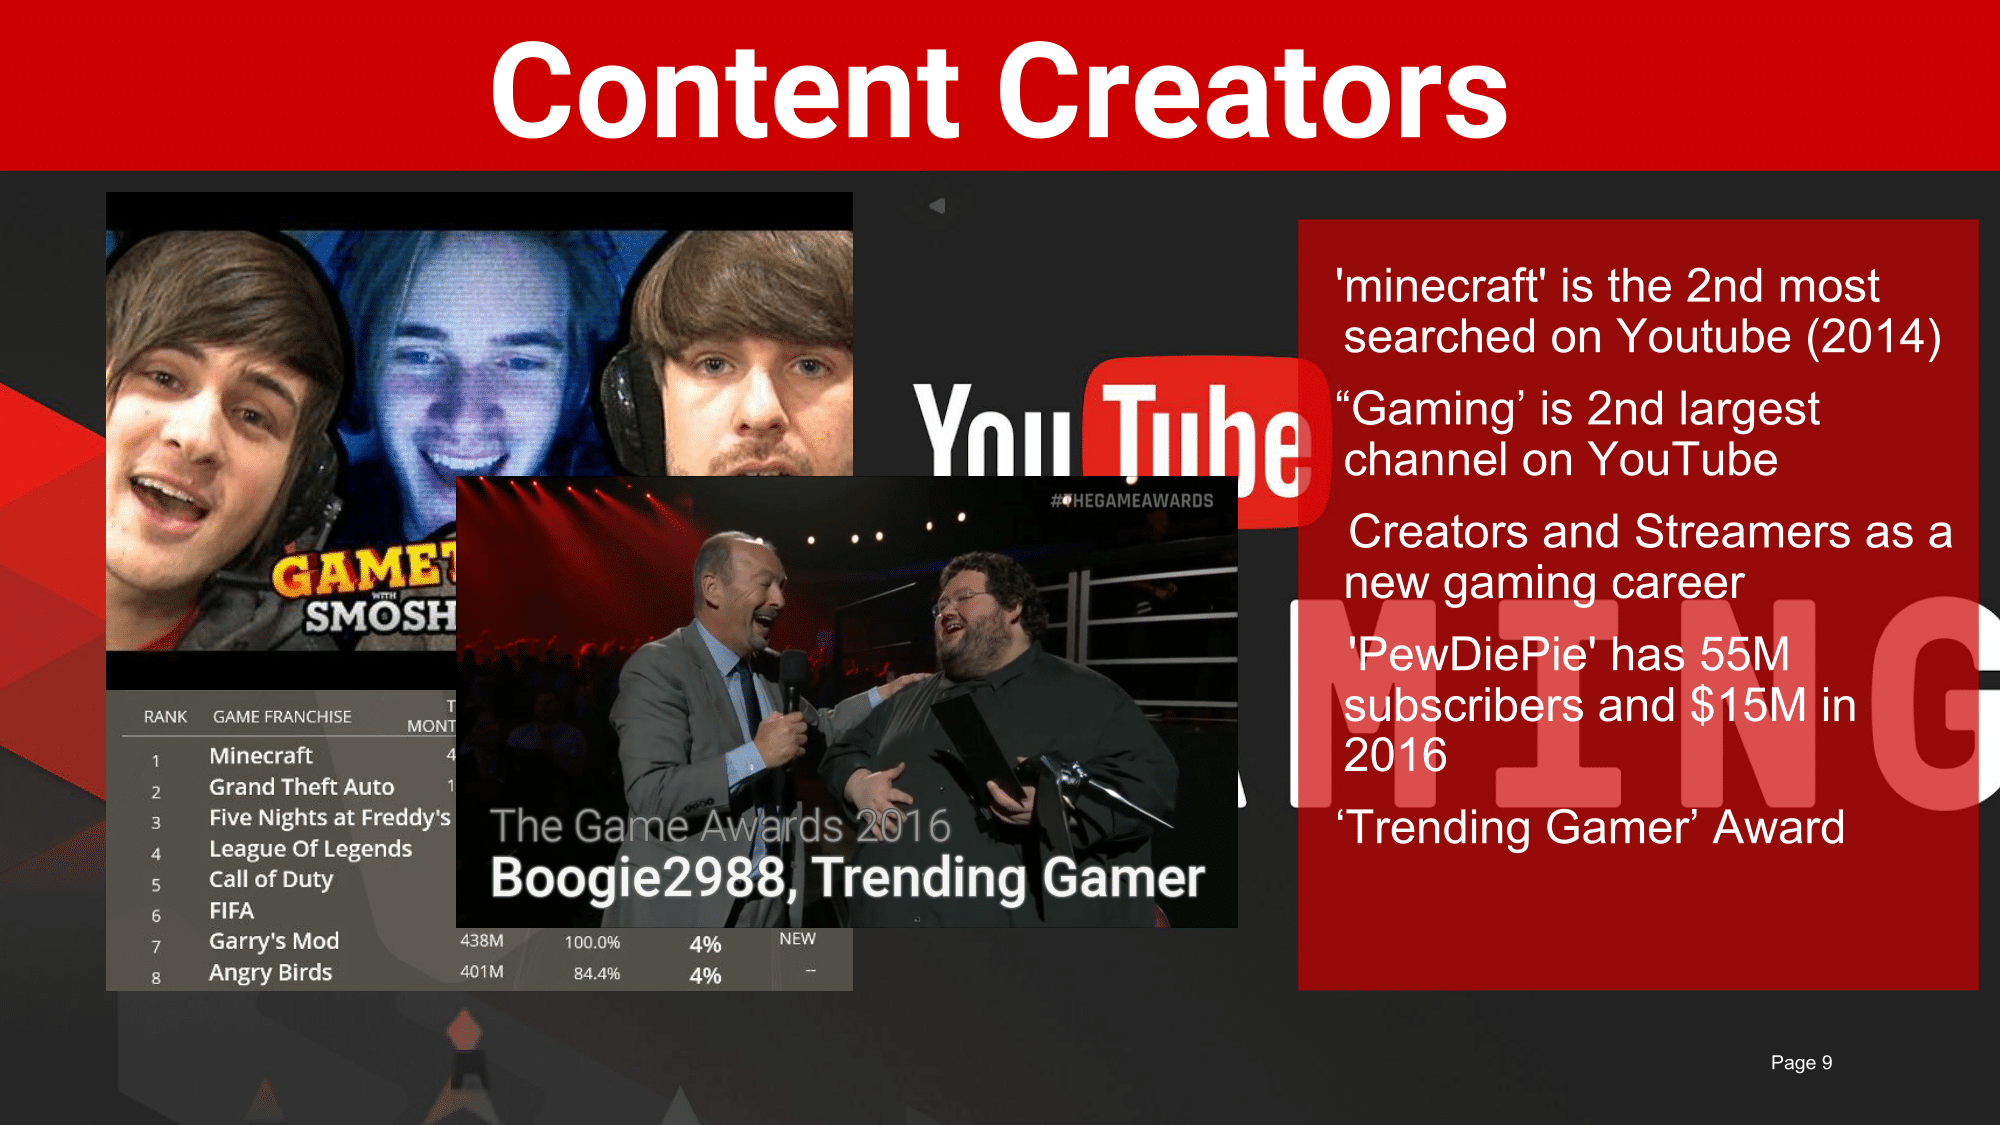 Content creators such as Smosh Gaming and Pewdiepie are becoming household names.  Creators are some of the leading figures in online content and quickly changing the culture of how games are consumed.